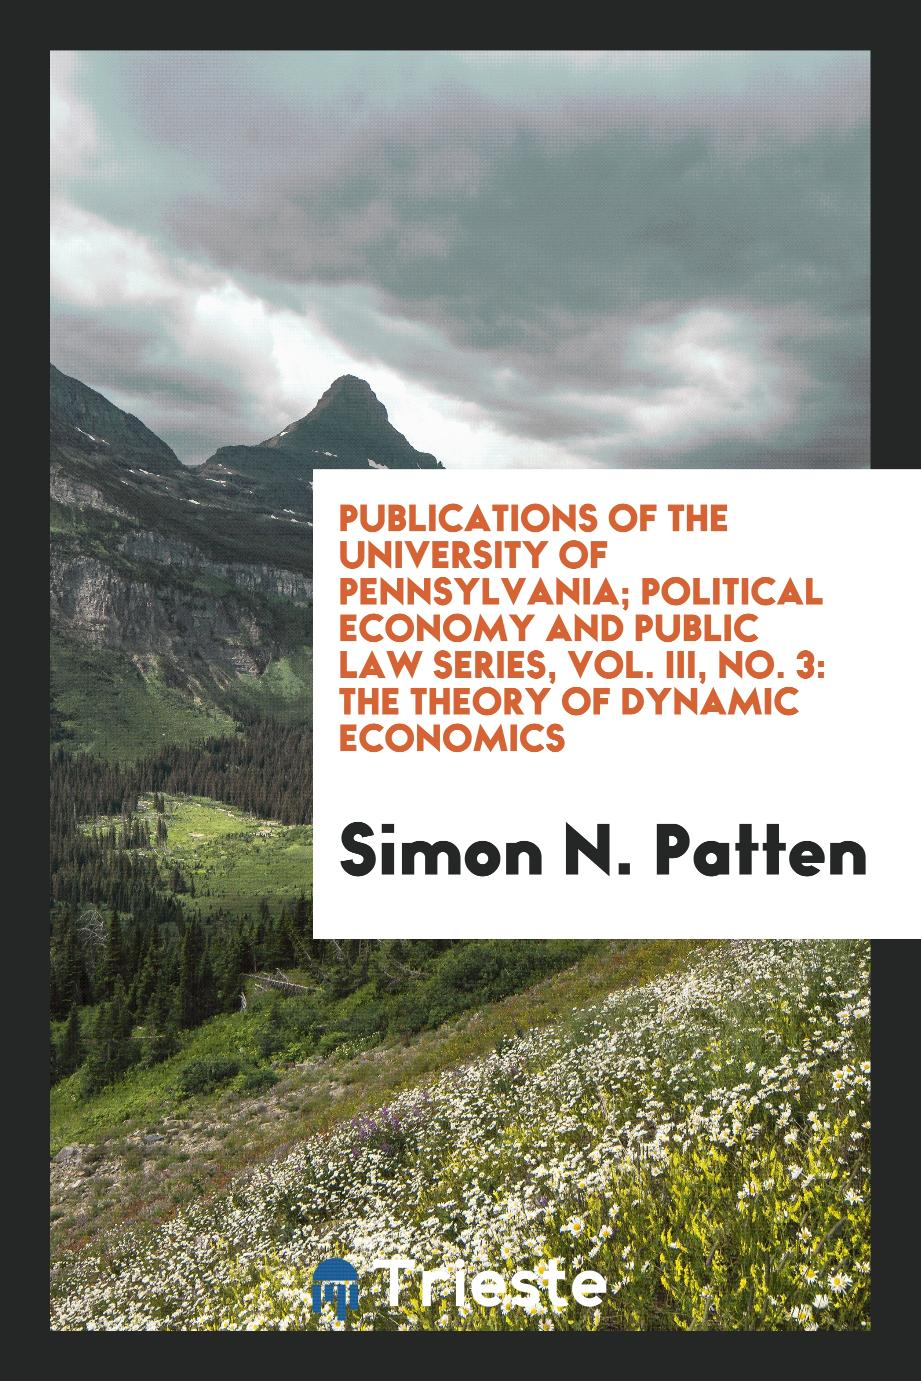 Publications of the University of Pennsylvania; Political Economy and Public Law Series, Vol. III, No. 3: The Theory of Dynamic Economics